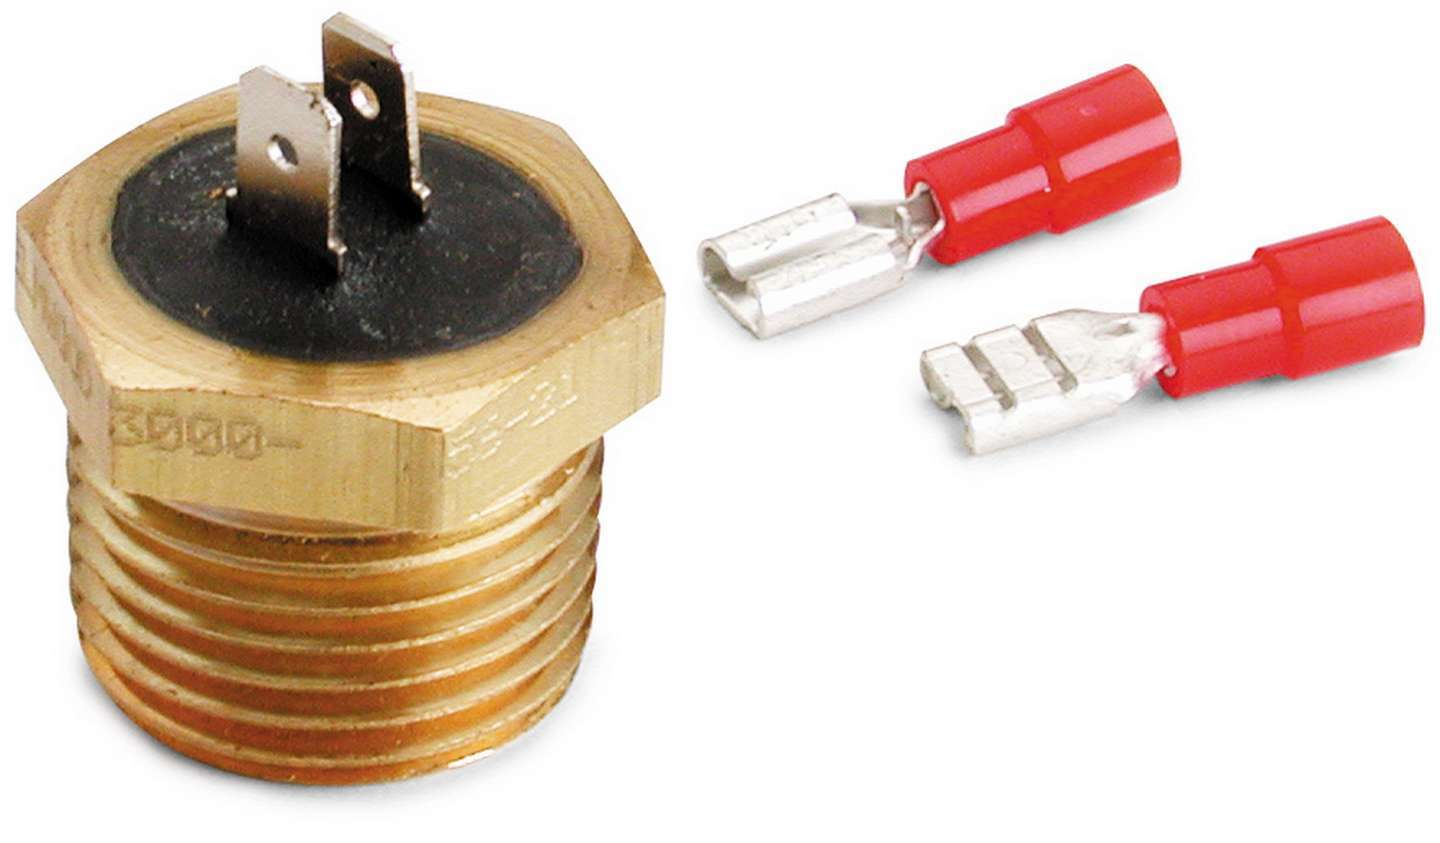 Auto Meter 3246 Temperature Switch, 200 Degree On, 170 Degree Off, 1/2 in NPT, Each